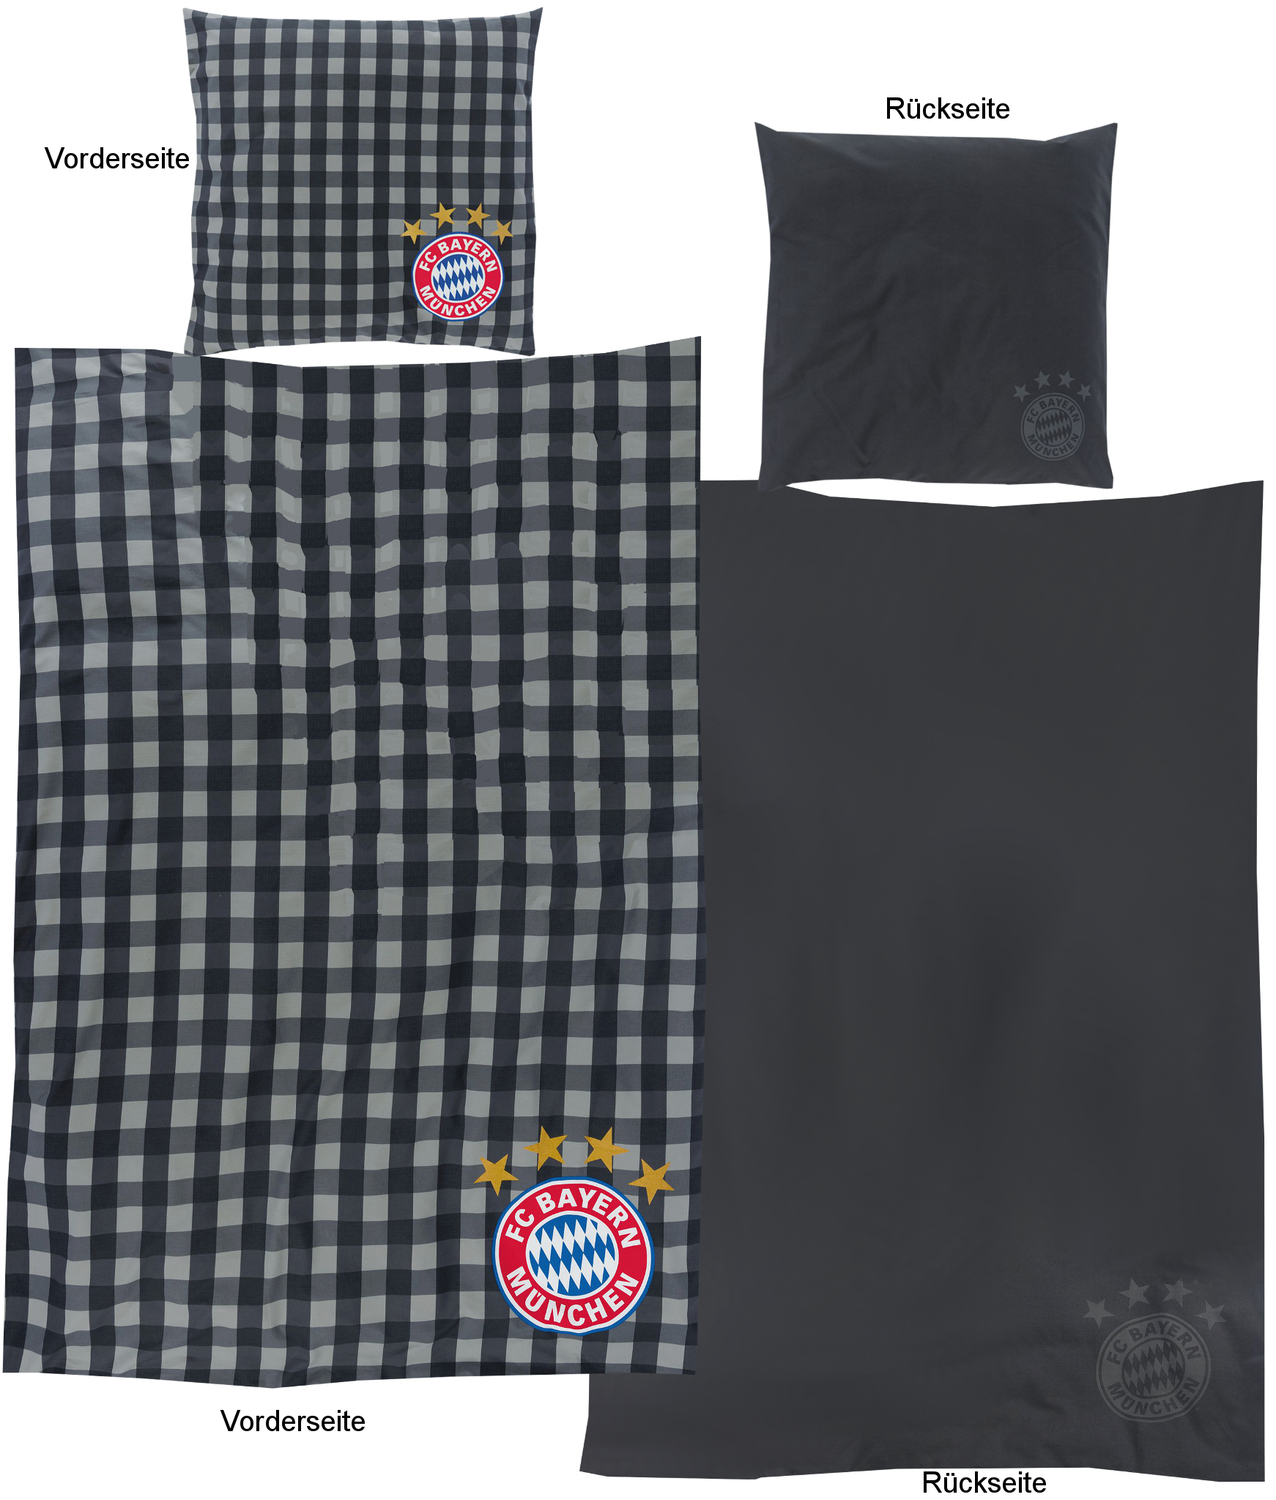 fc bayern m nchen bettw sche karos 135x200cm. Black Bedroom Furniture Sets. Home Design Ideas